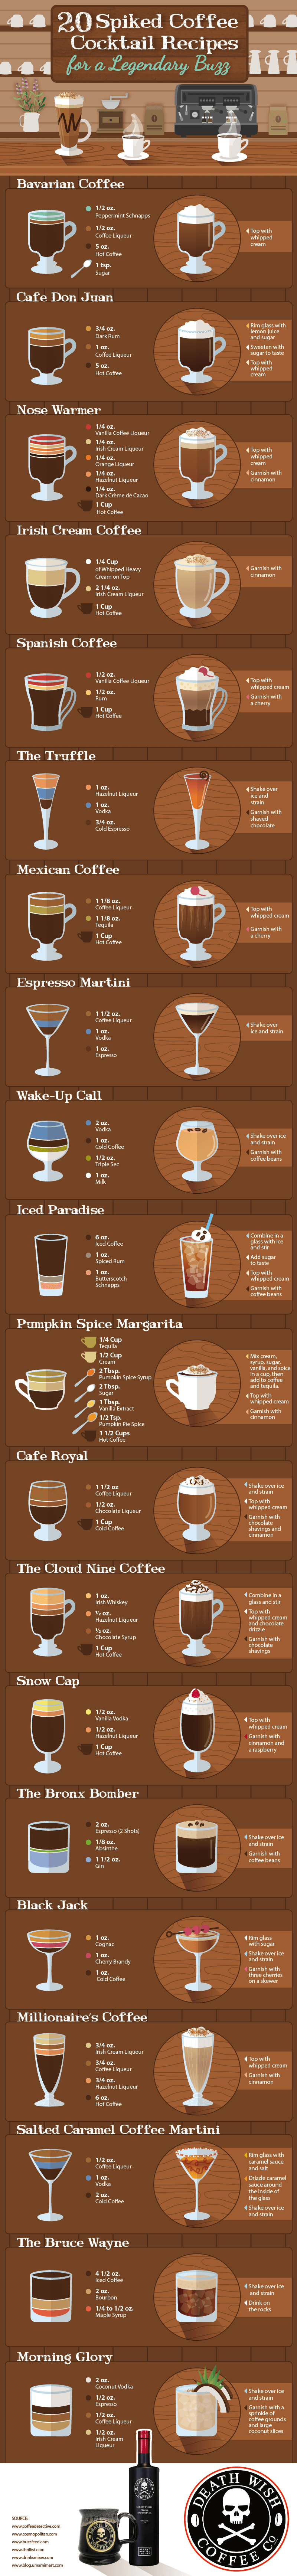 20 Spiked Coffee Cocktail Recipes for a Legendary Buzz - DeathWishCoffee.com - Infographic